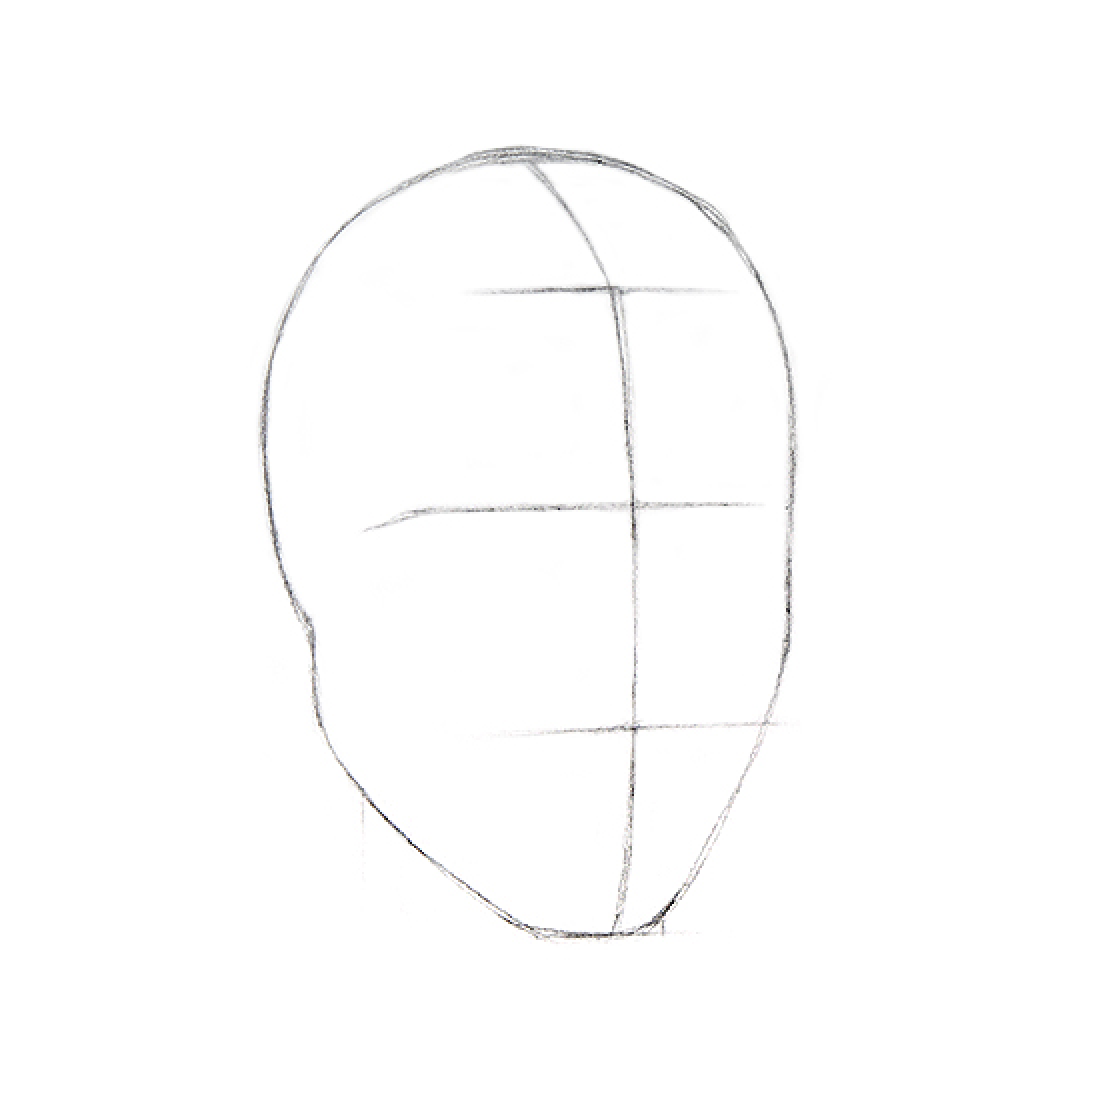 How to Draw a Head - Step 1